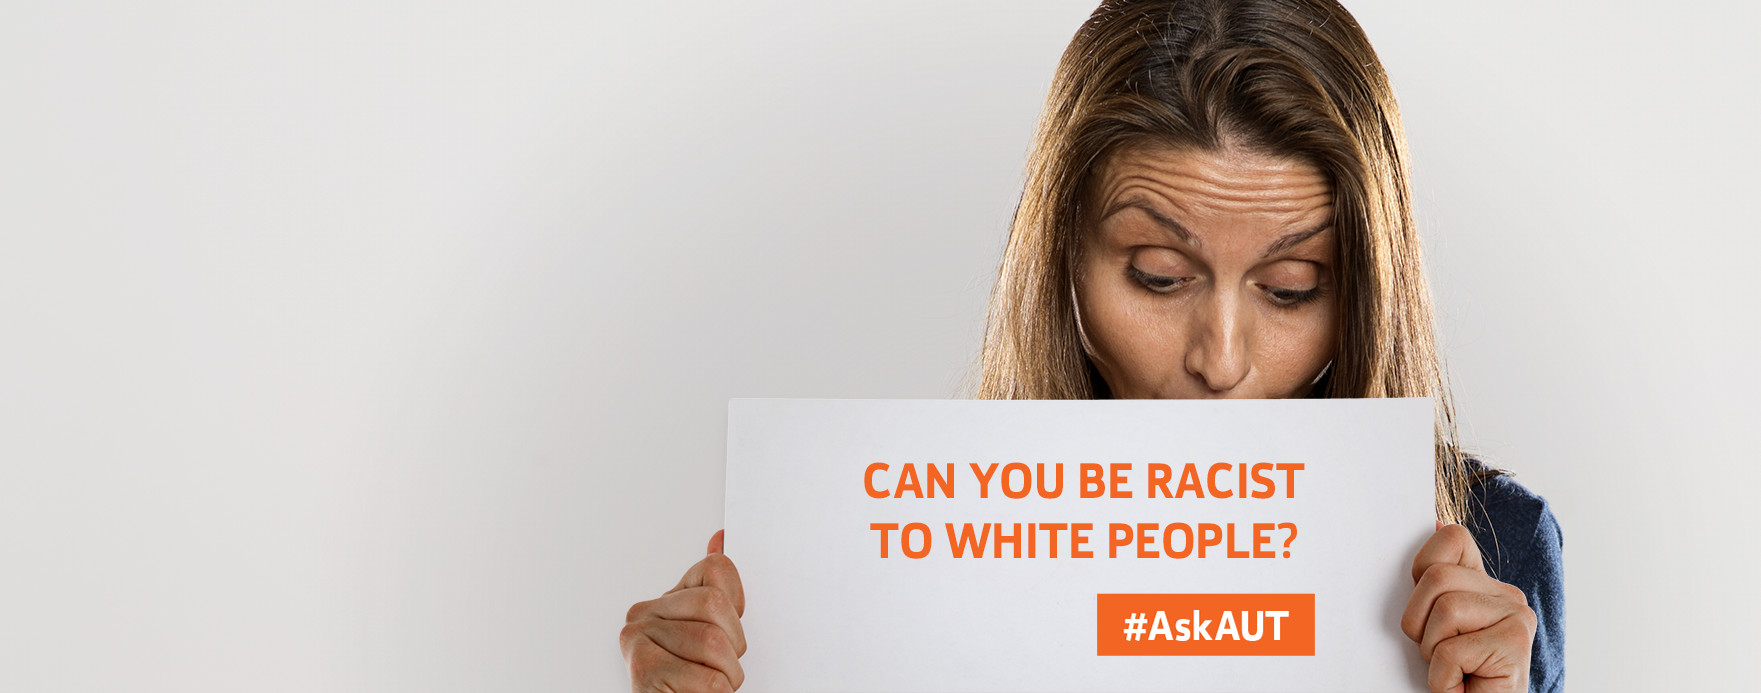 Can you be racist to white people?